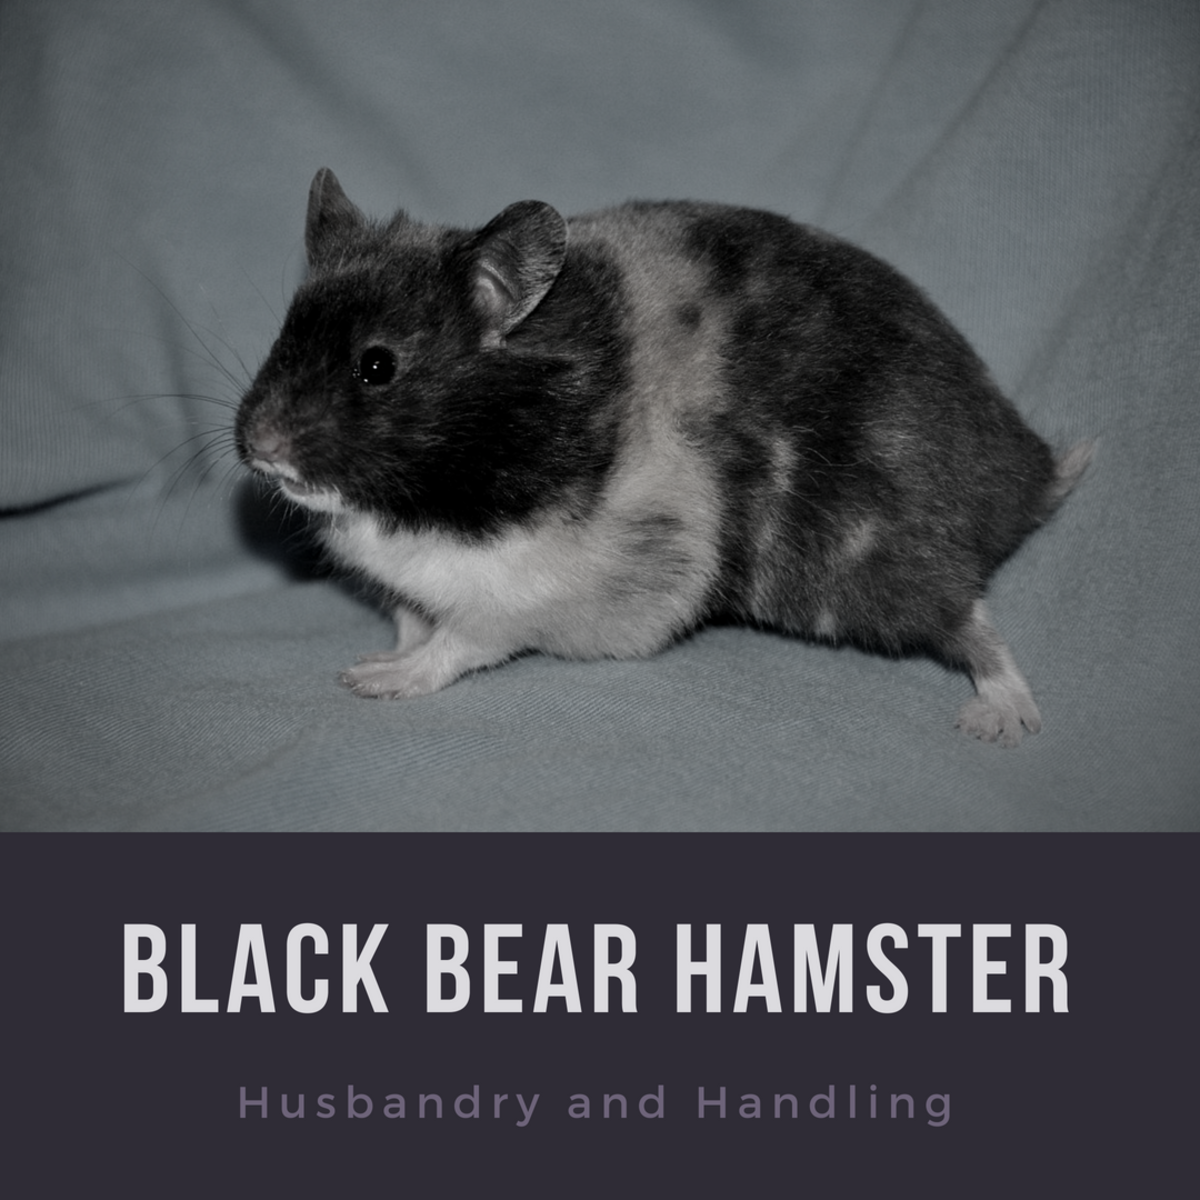 Learn how to properly care for your Black Bear hamster.